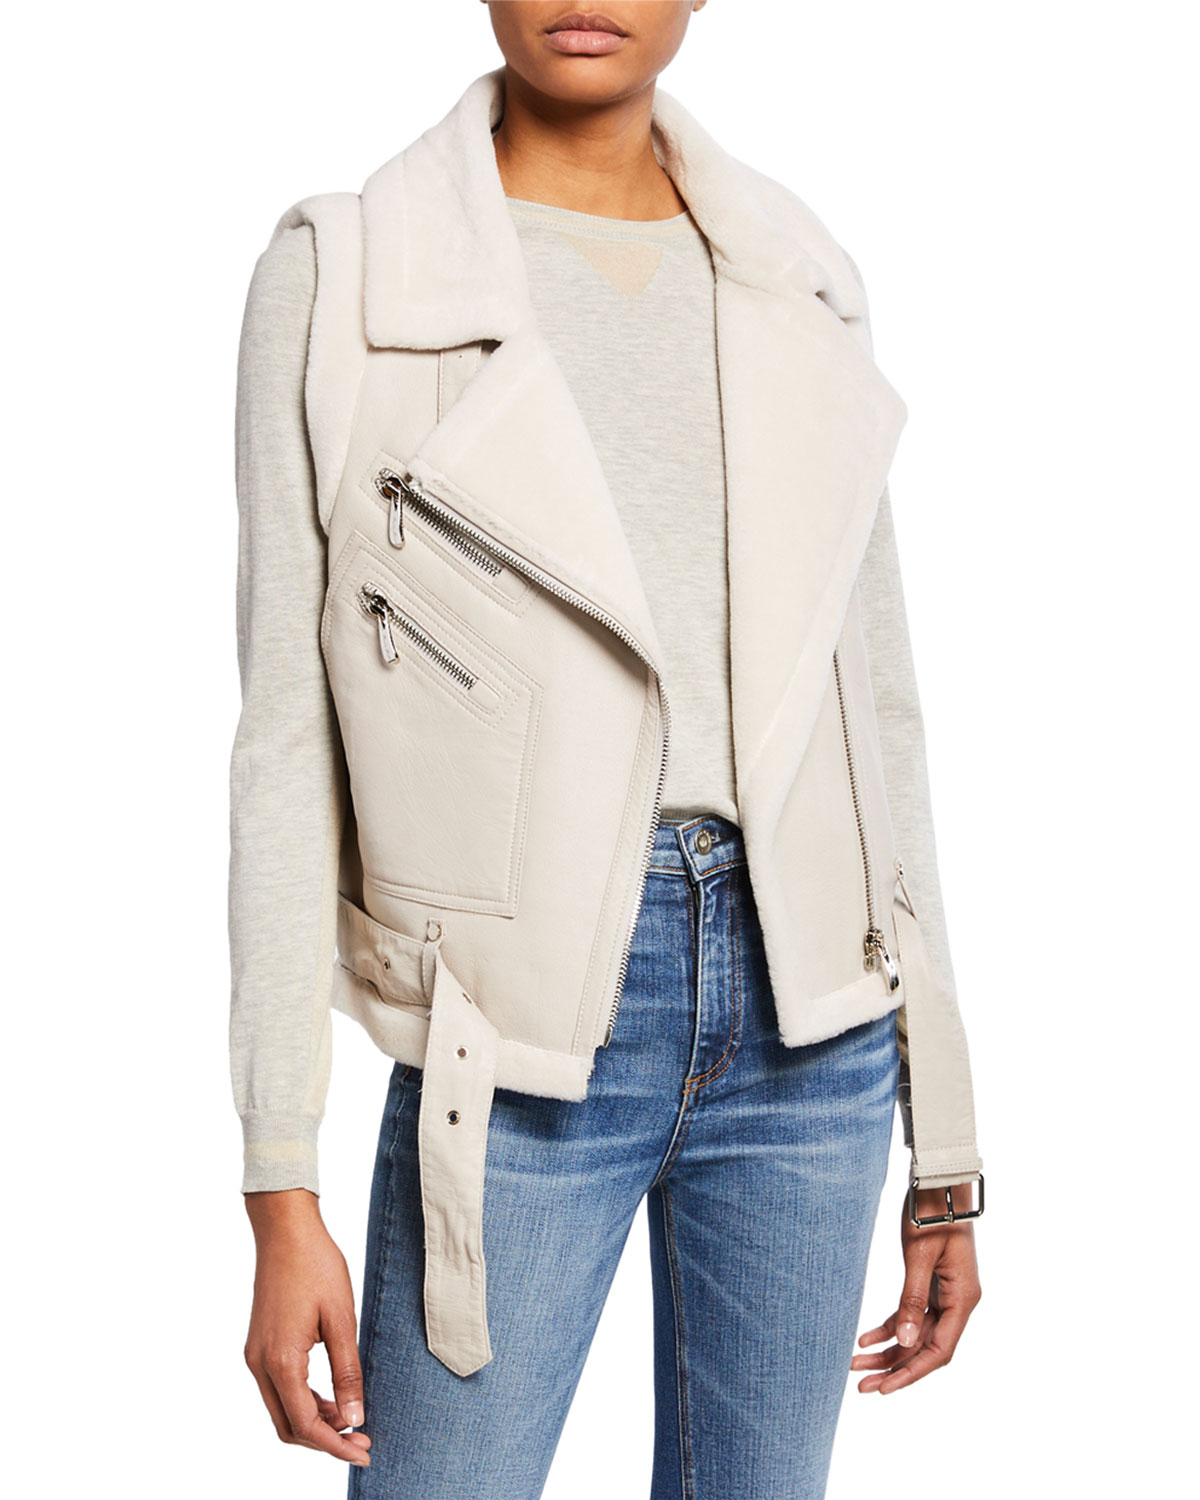 Belle Fare Tops Leather Moto Vest w/ Fur Lining